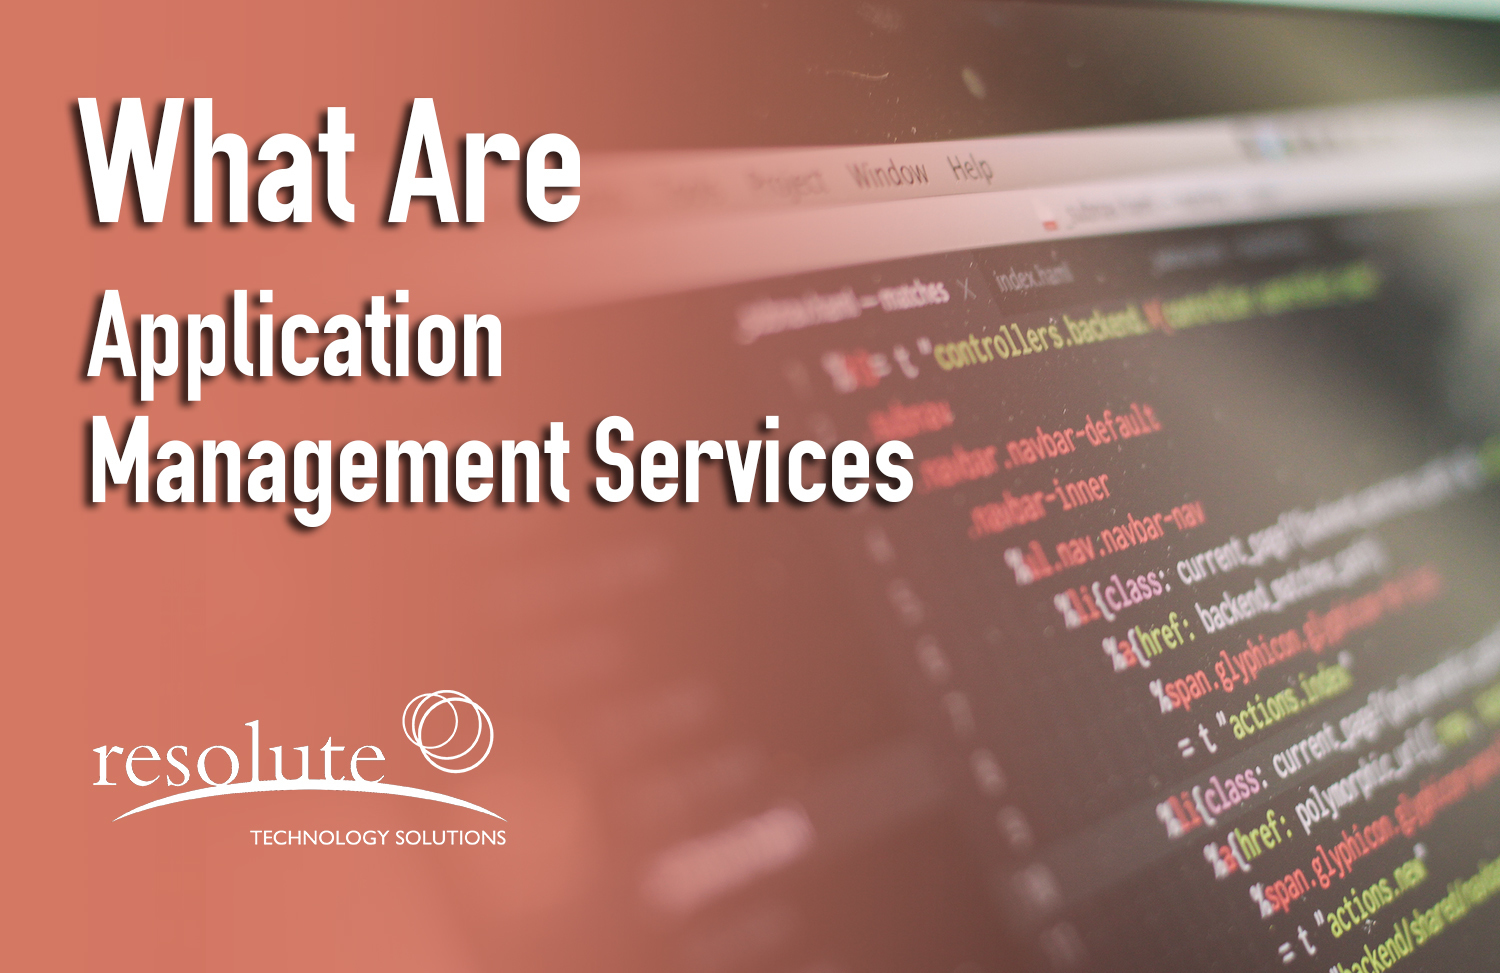 What are Application Management Services (AMS)?